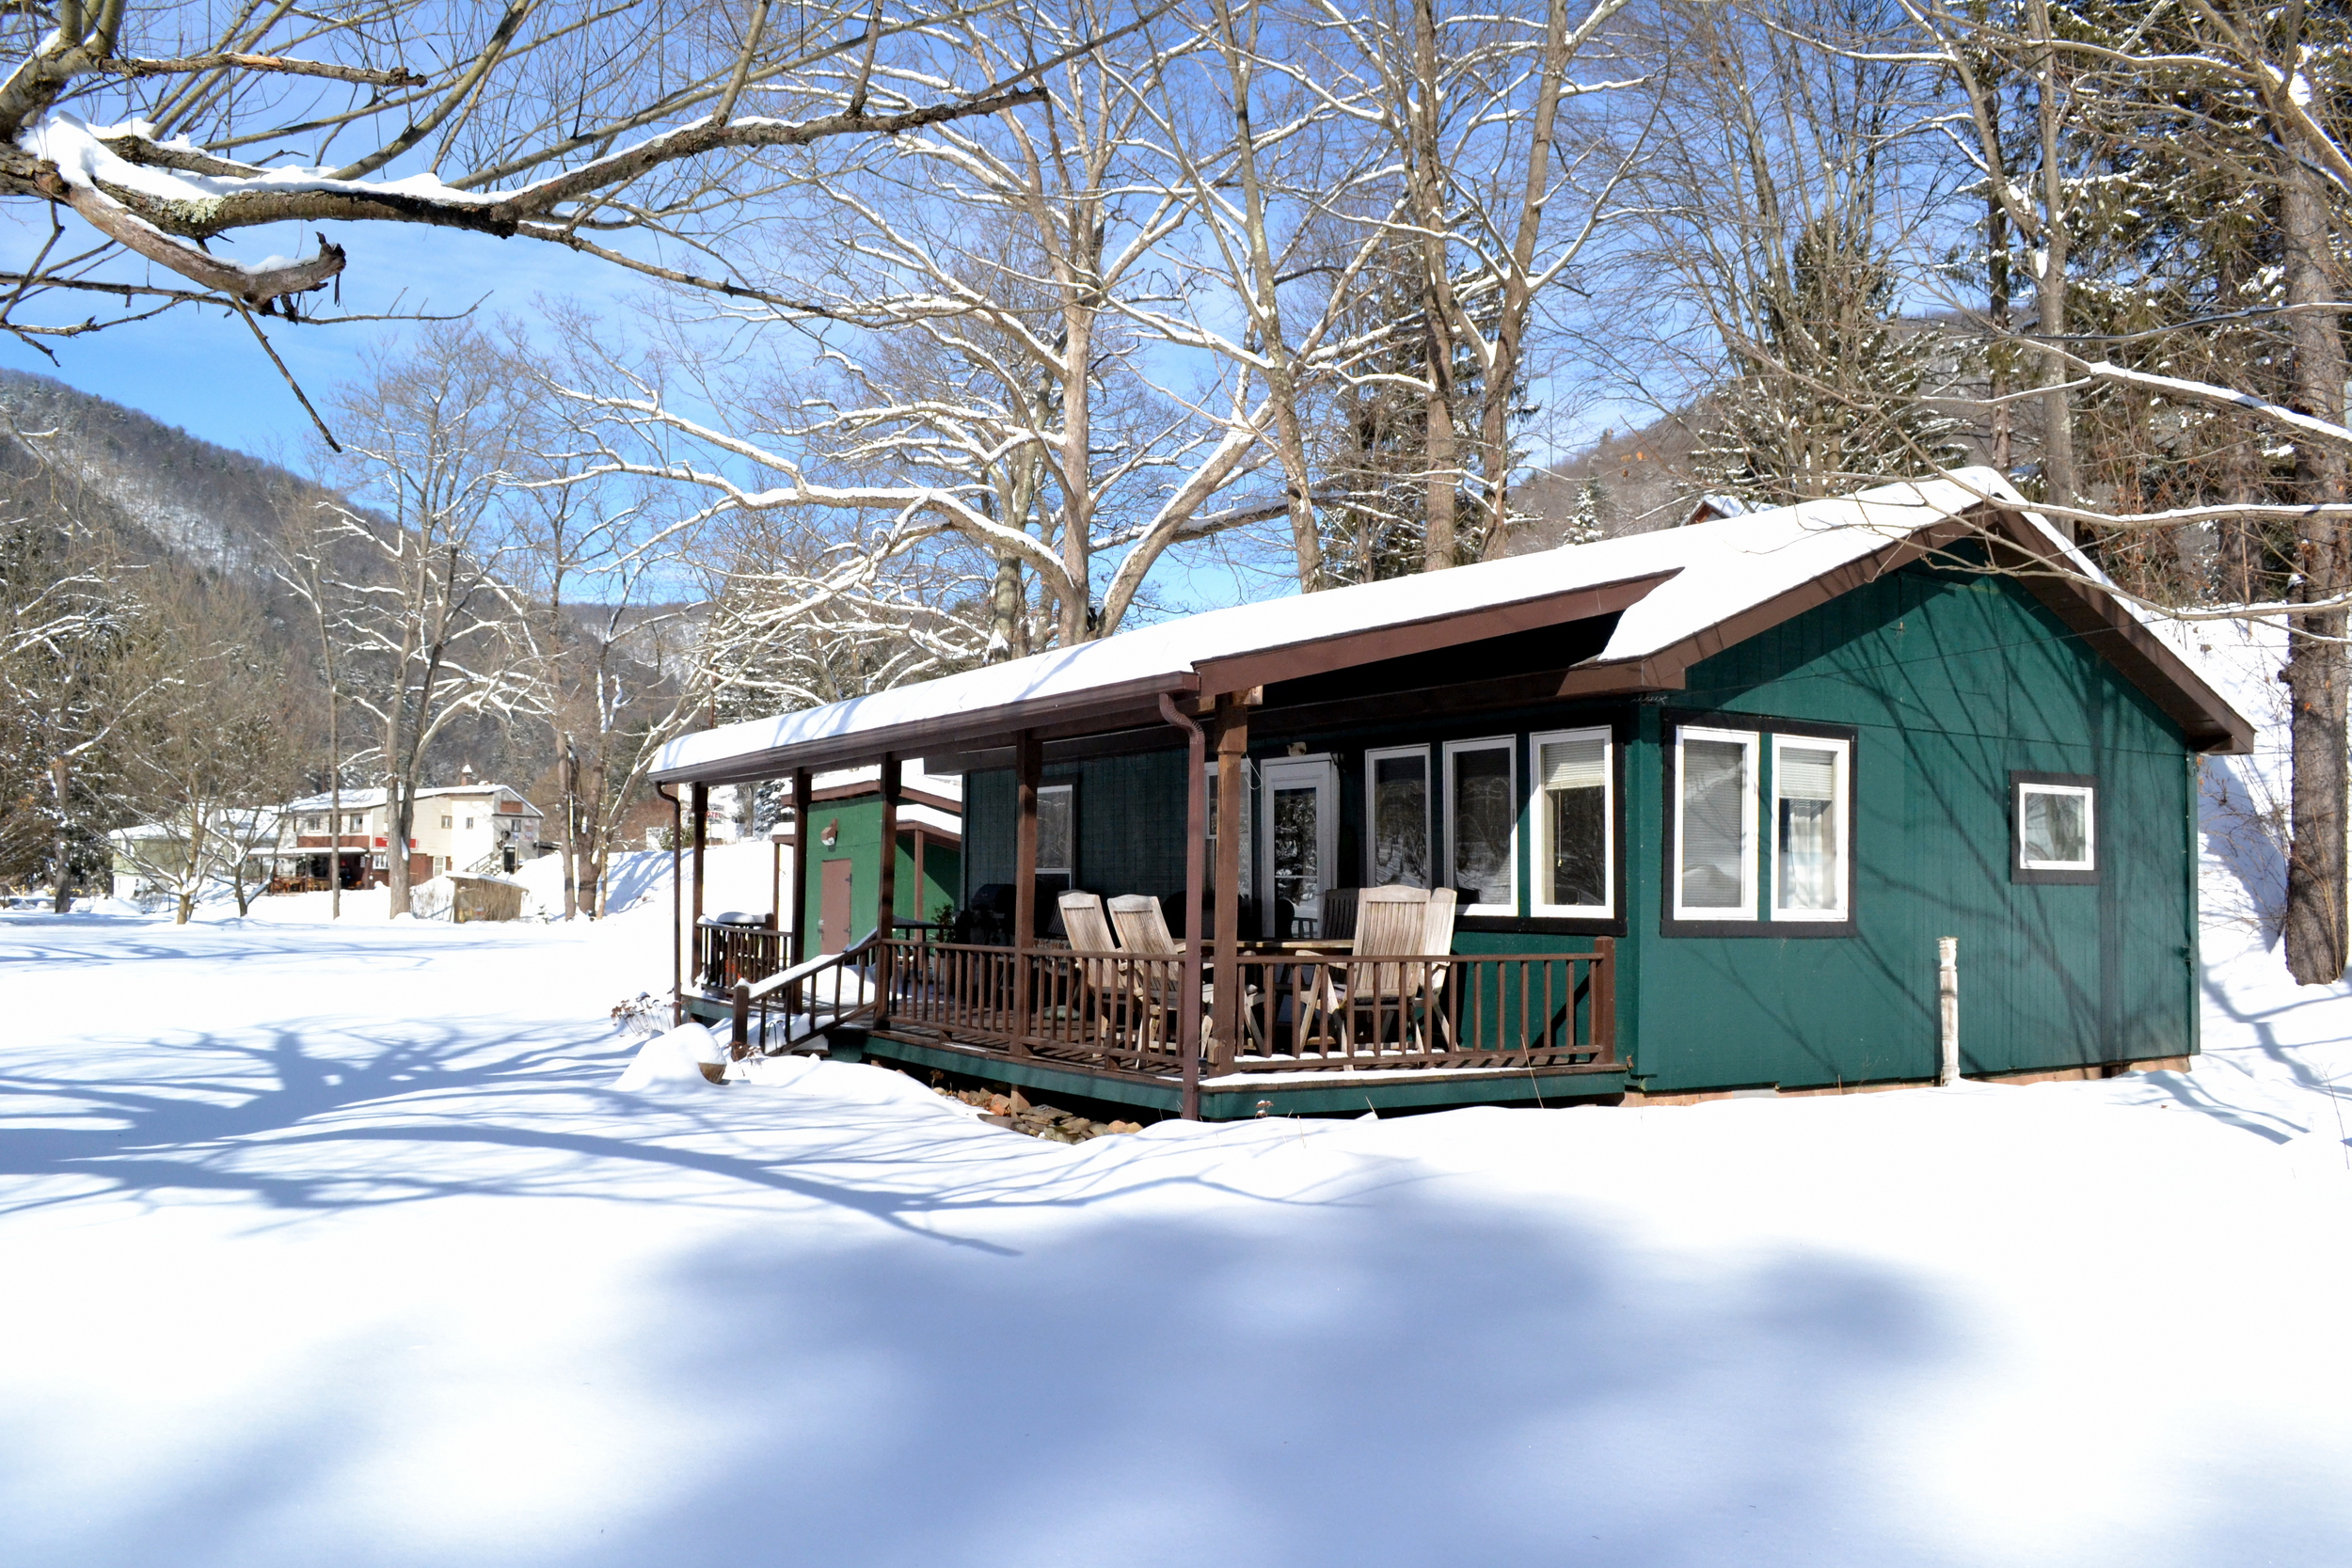 Year round stays are available.